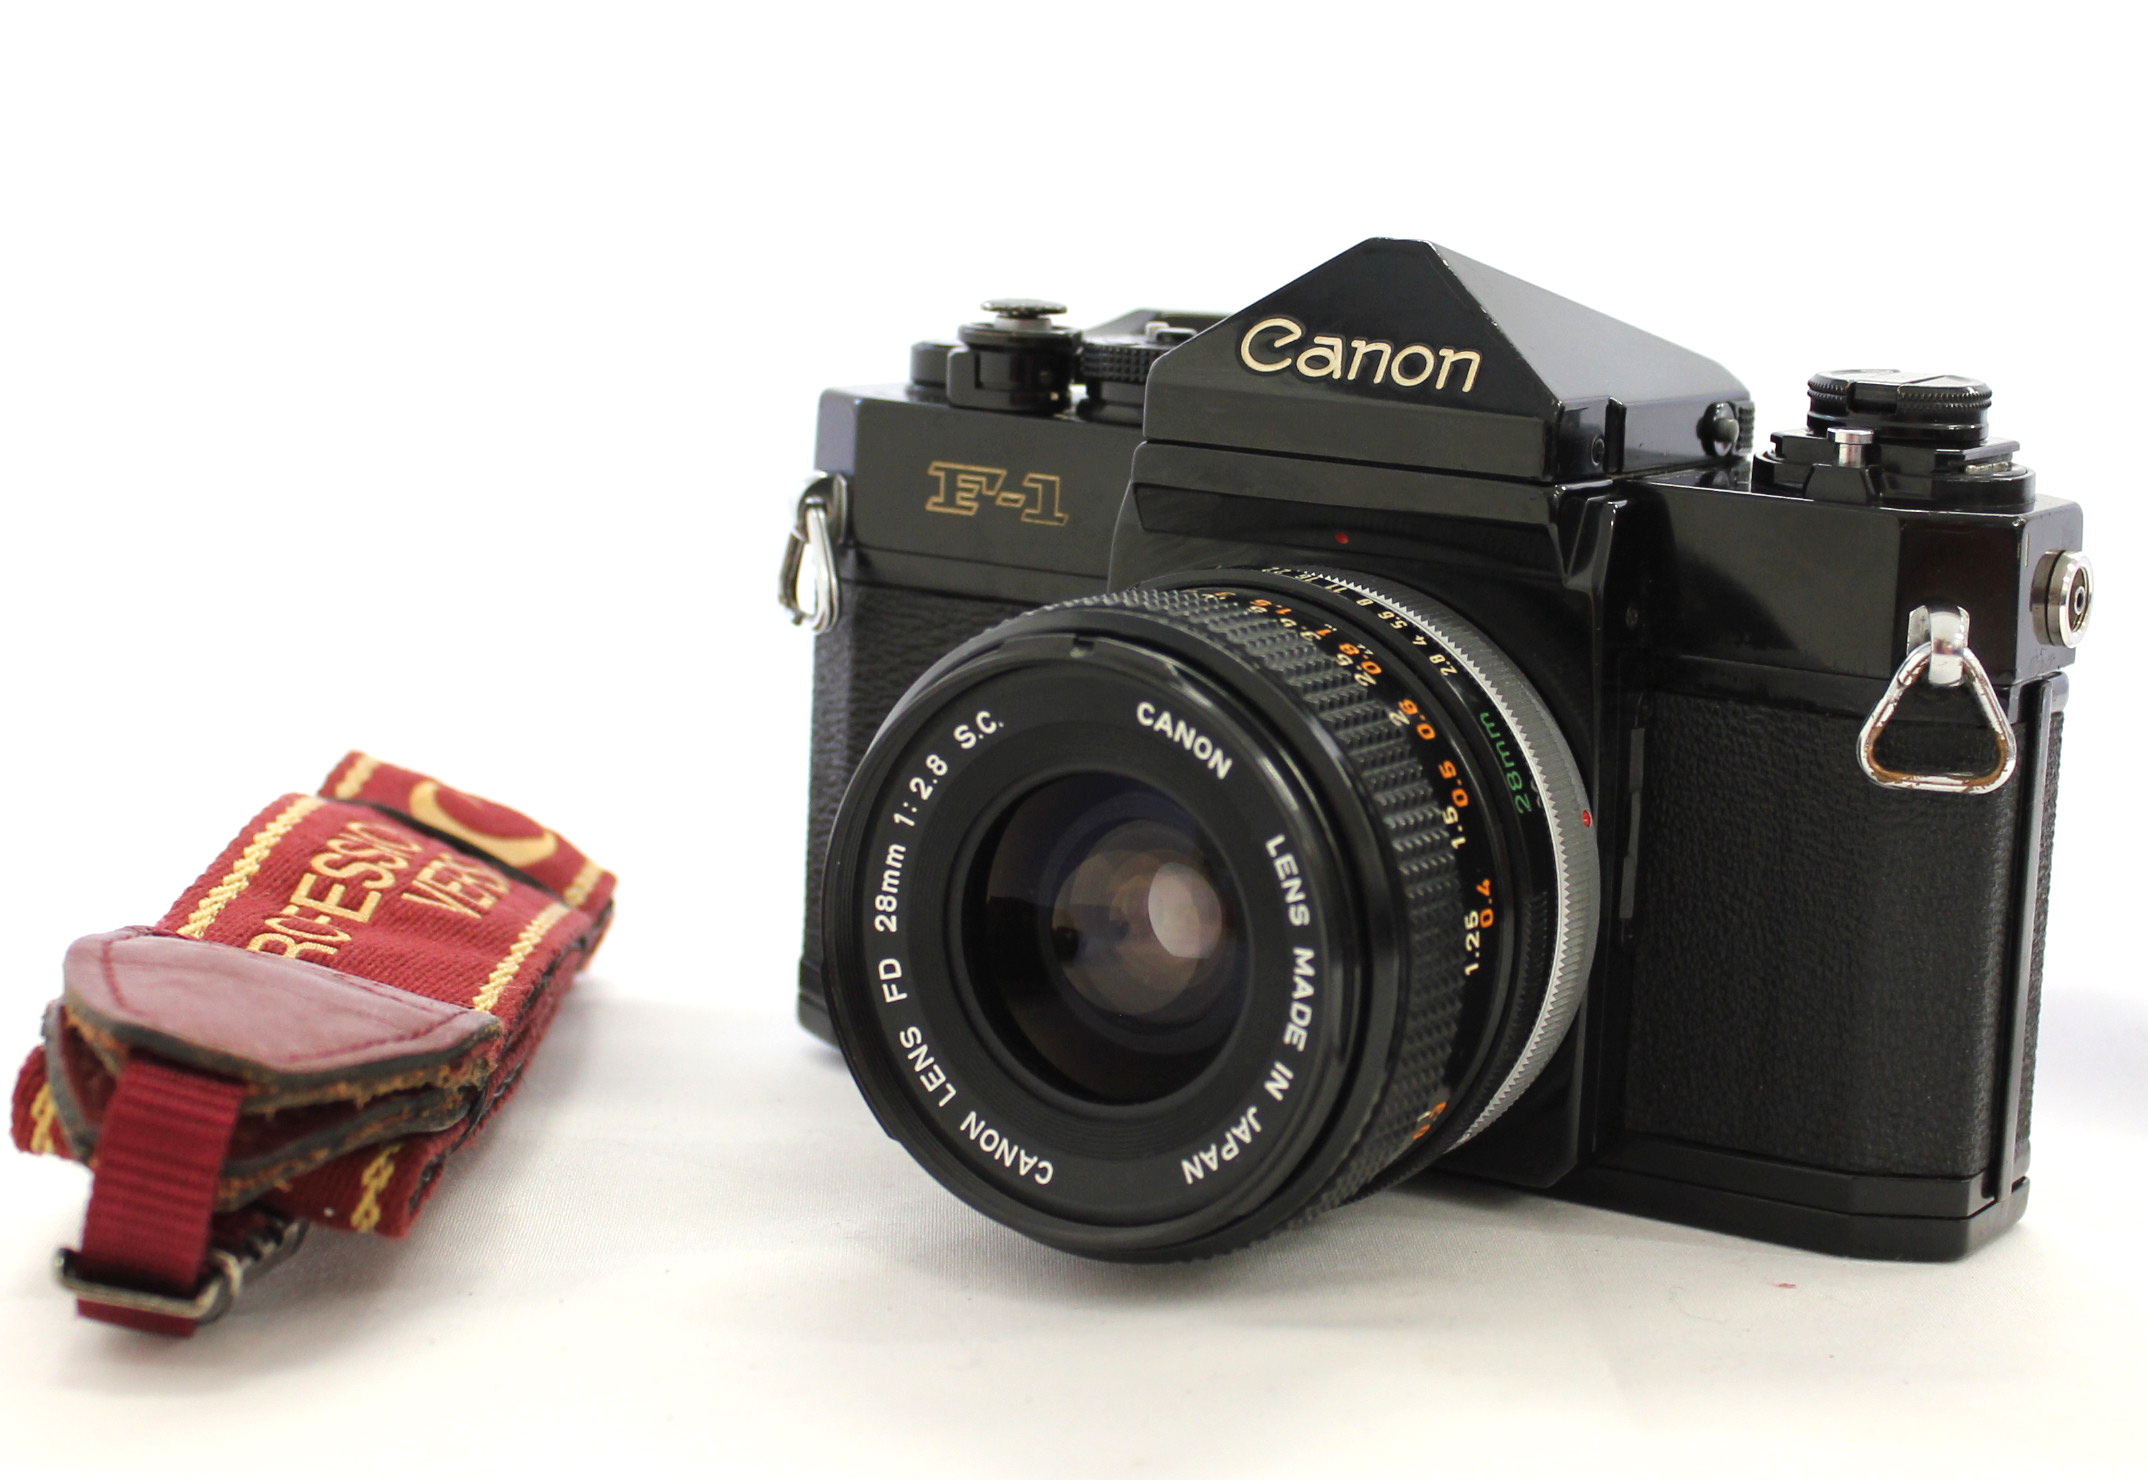 [Excellent++++] Canon F-1 Late Model 35mm SLR Film Camera with FD 28mm F/2.8 S.C. Lens from Japan